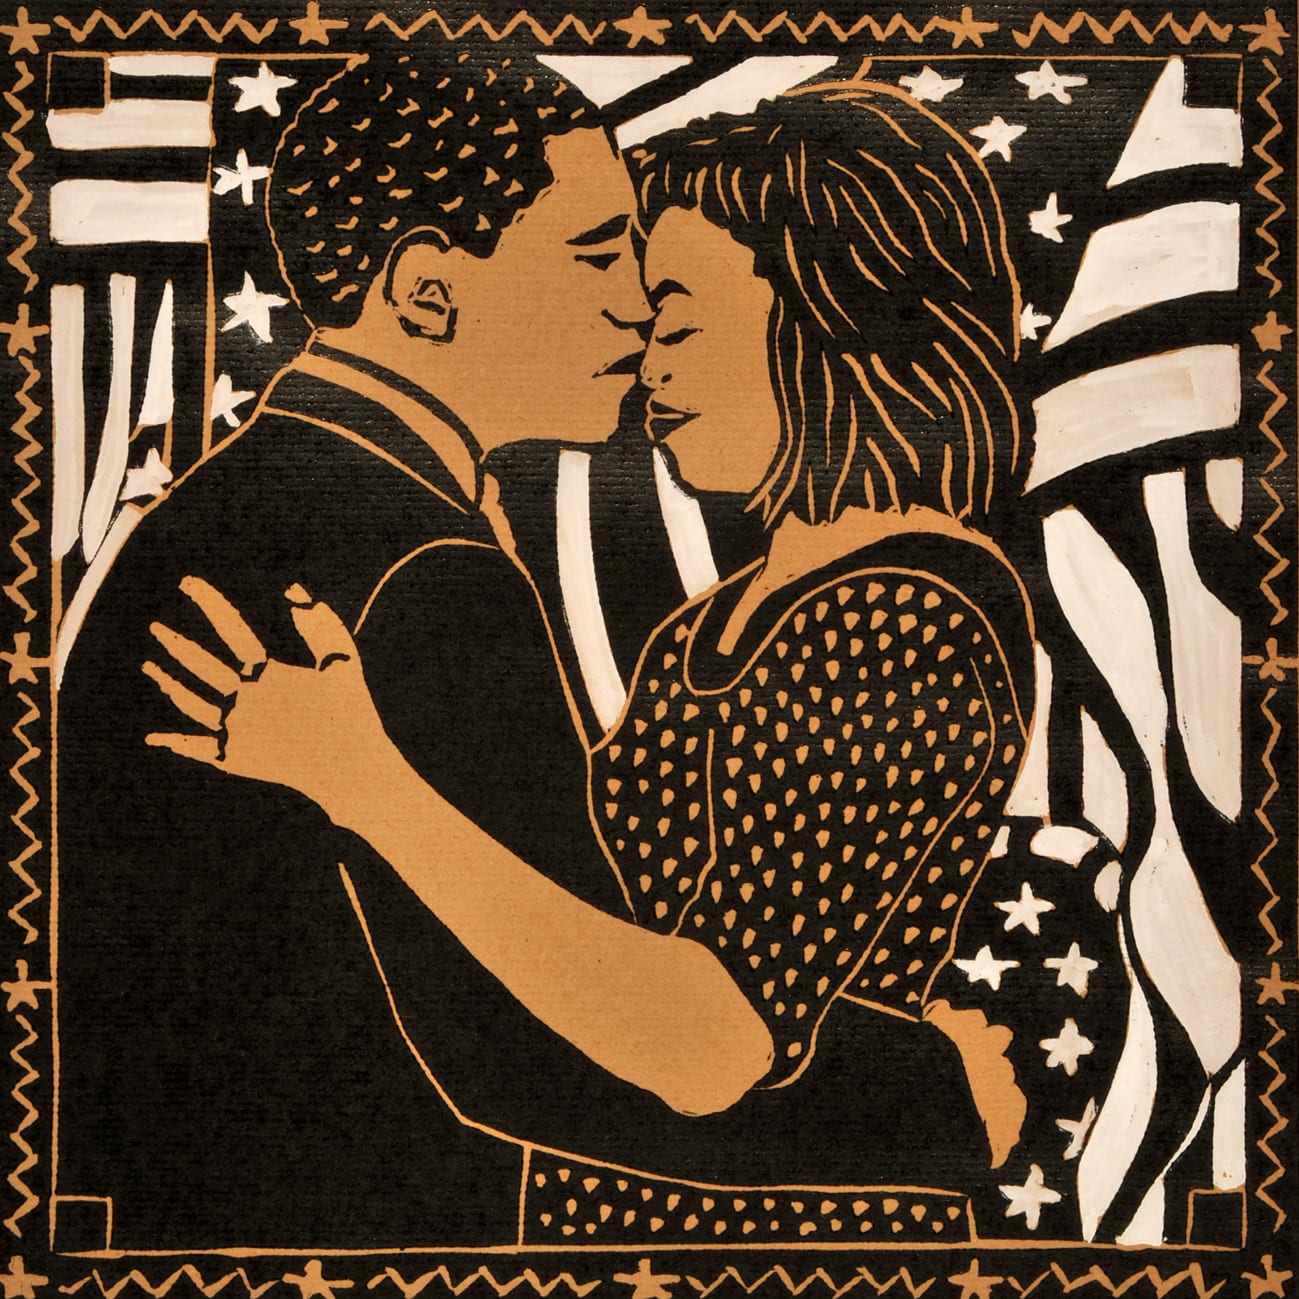 Dione Verulam, The Obama Kiss